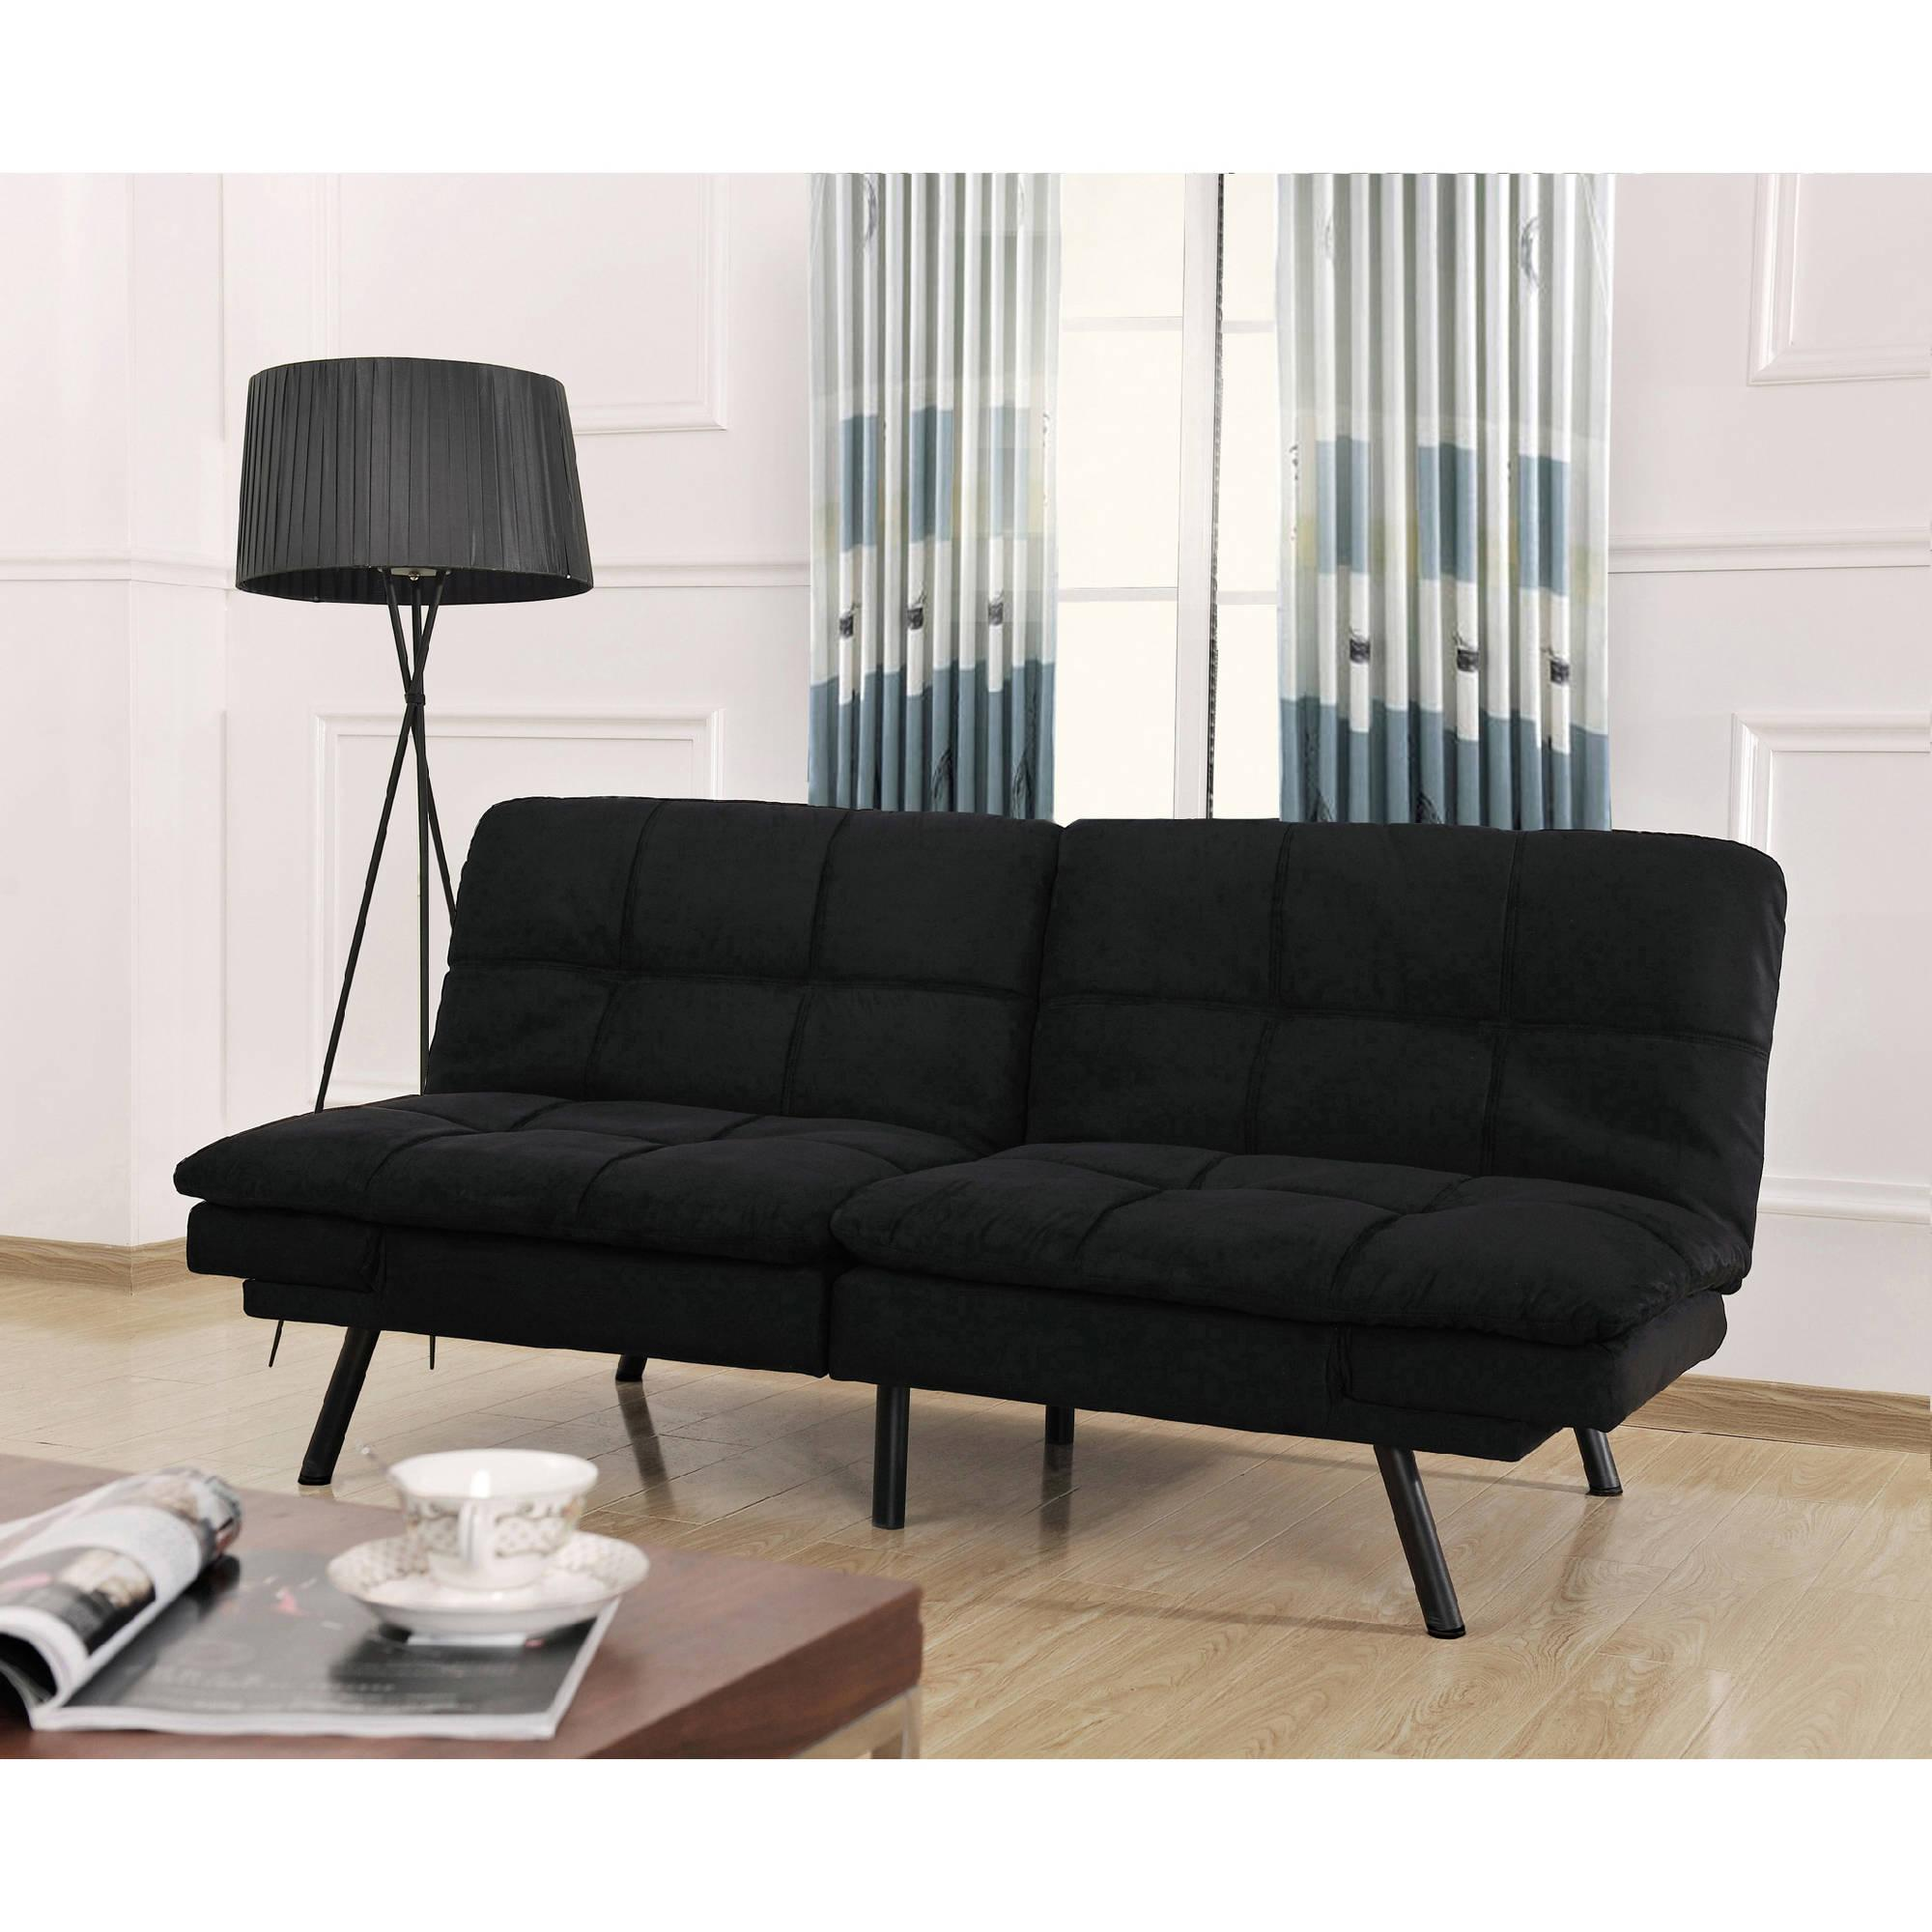 futons for sale at walmart   metal arm futon walmart   walmart futon furniture  u0026 rug  futon cheap   cool futons   walmart futon  rh   marccharlessteakhouse